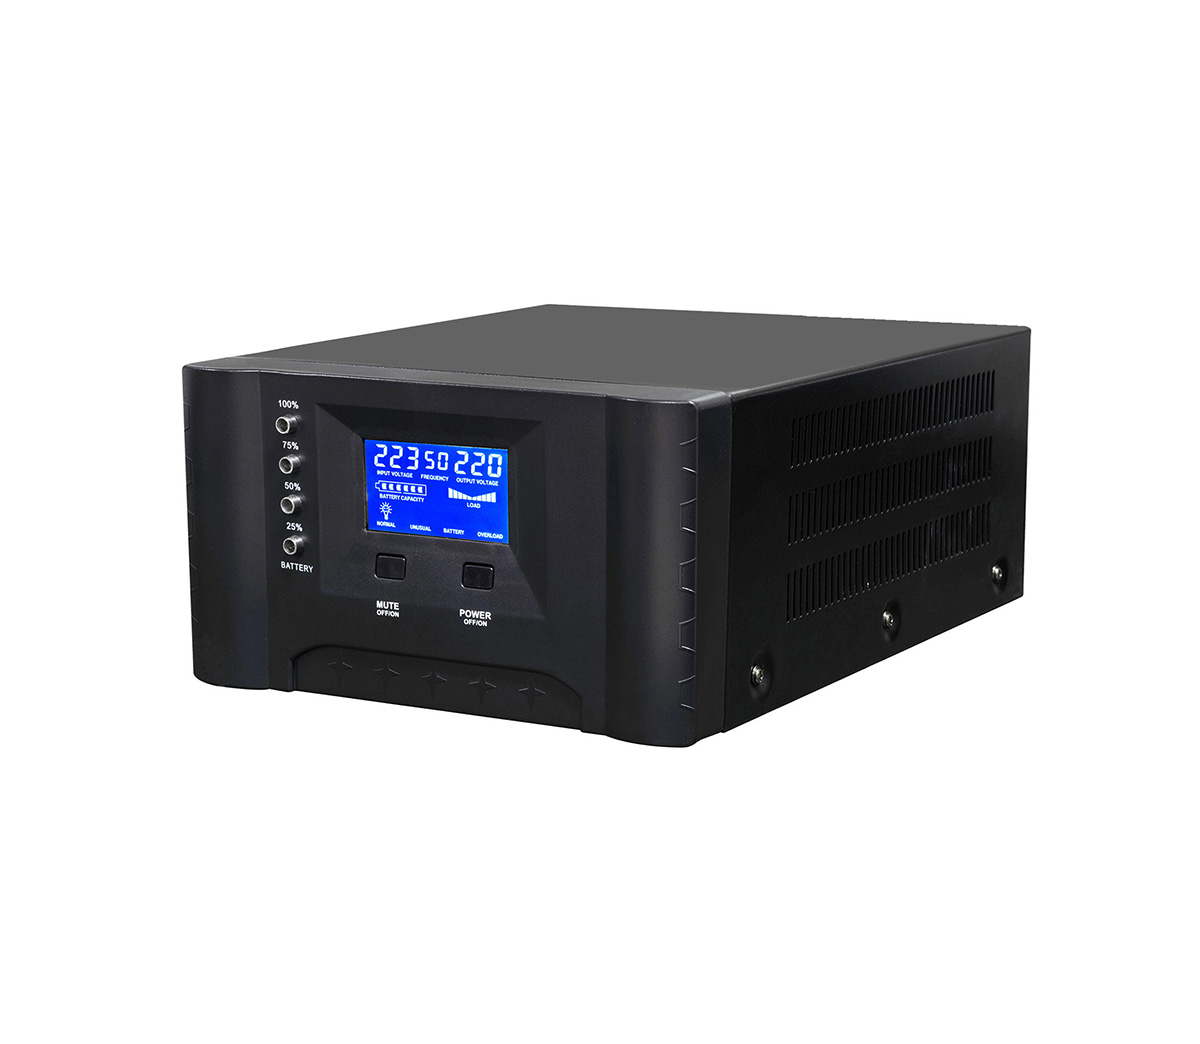 Hybrid inverter for home 350w-700w